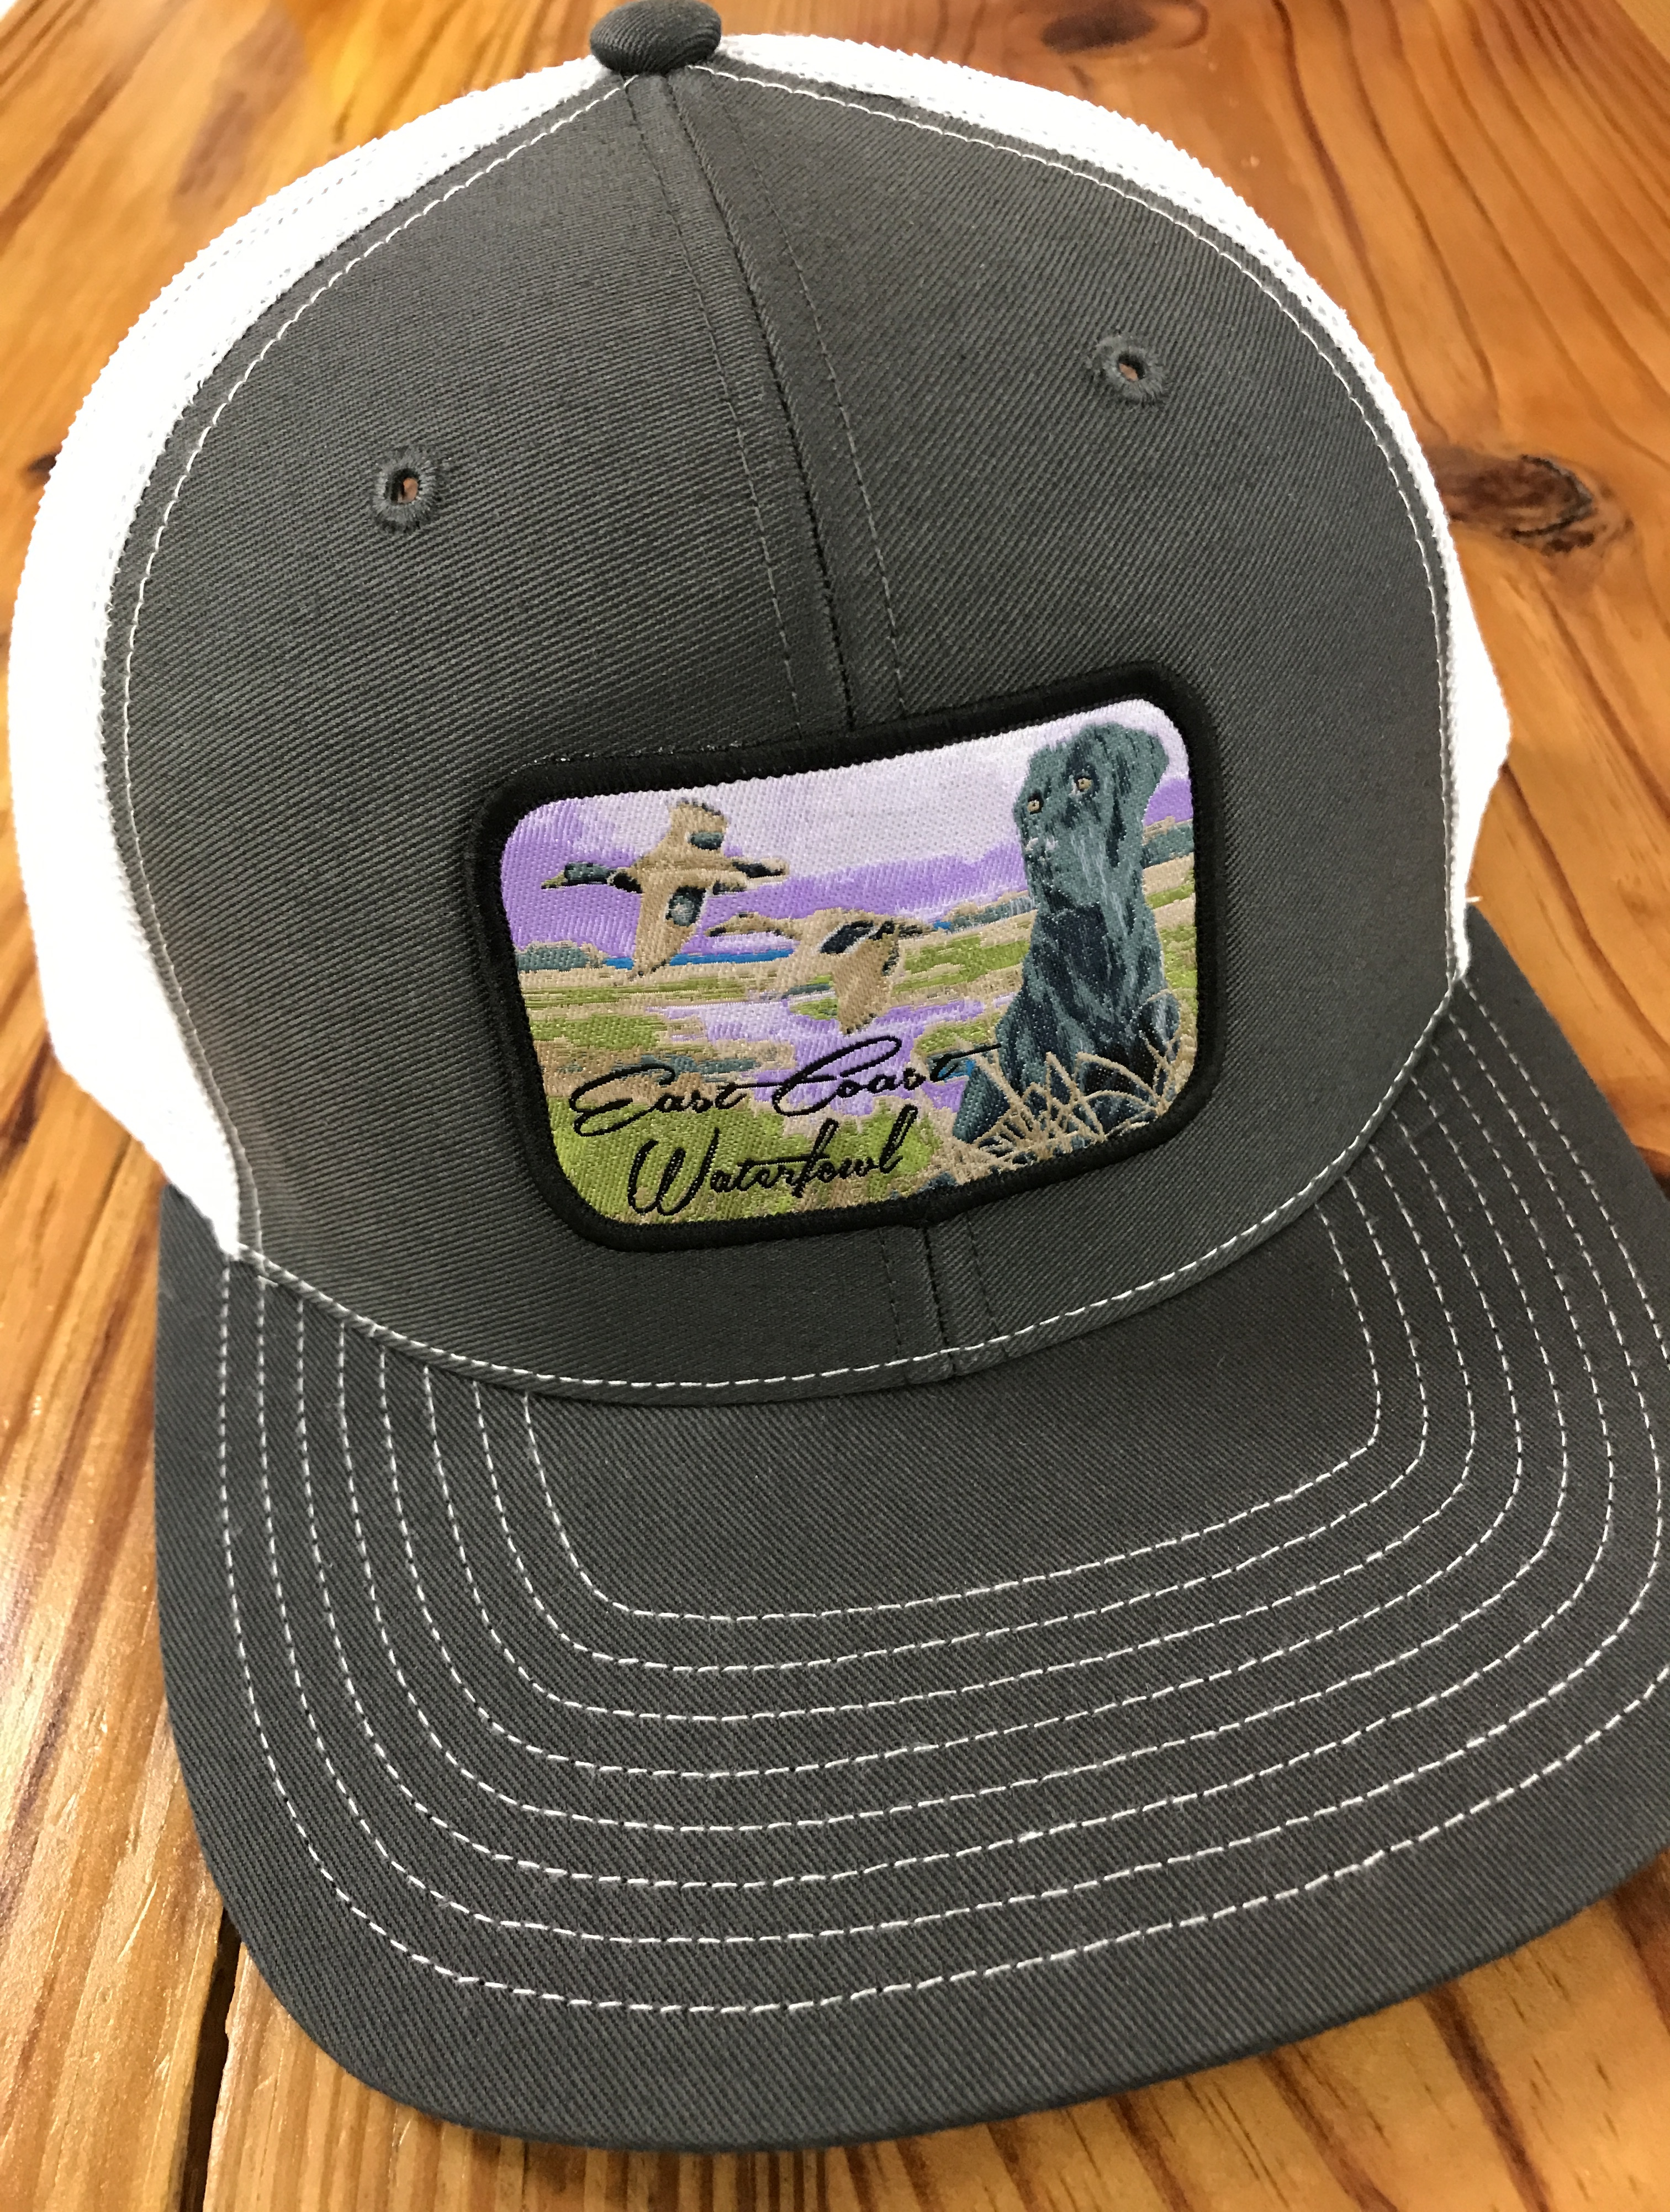 East Coast Waterfowl Lab Patch Snap Back Trucker Hat Charcoal White East  Coast Waterfowl 1ddc8a95aa2